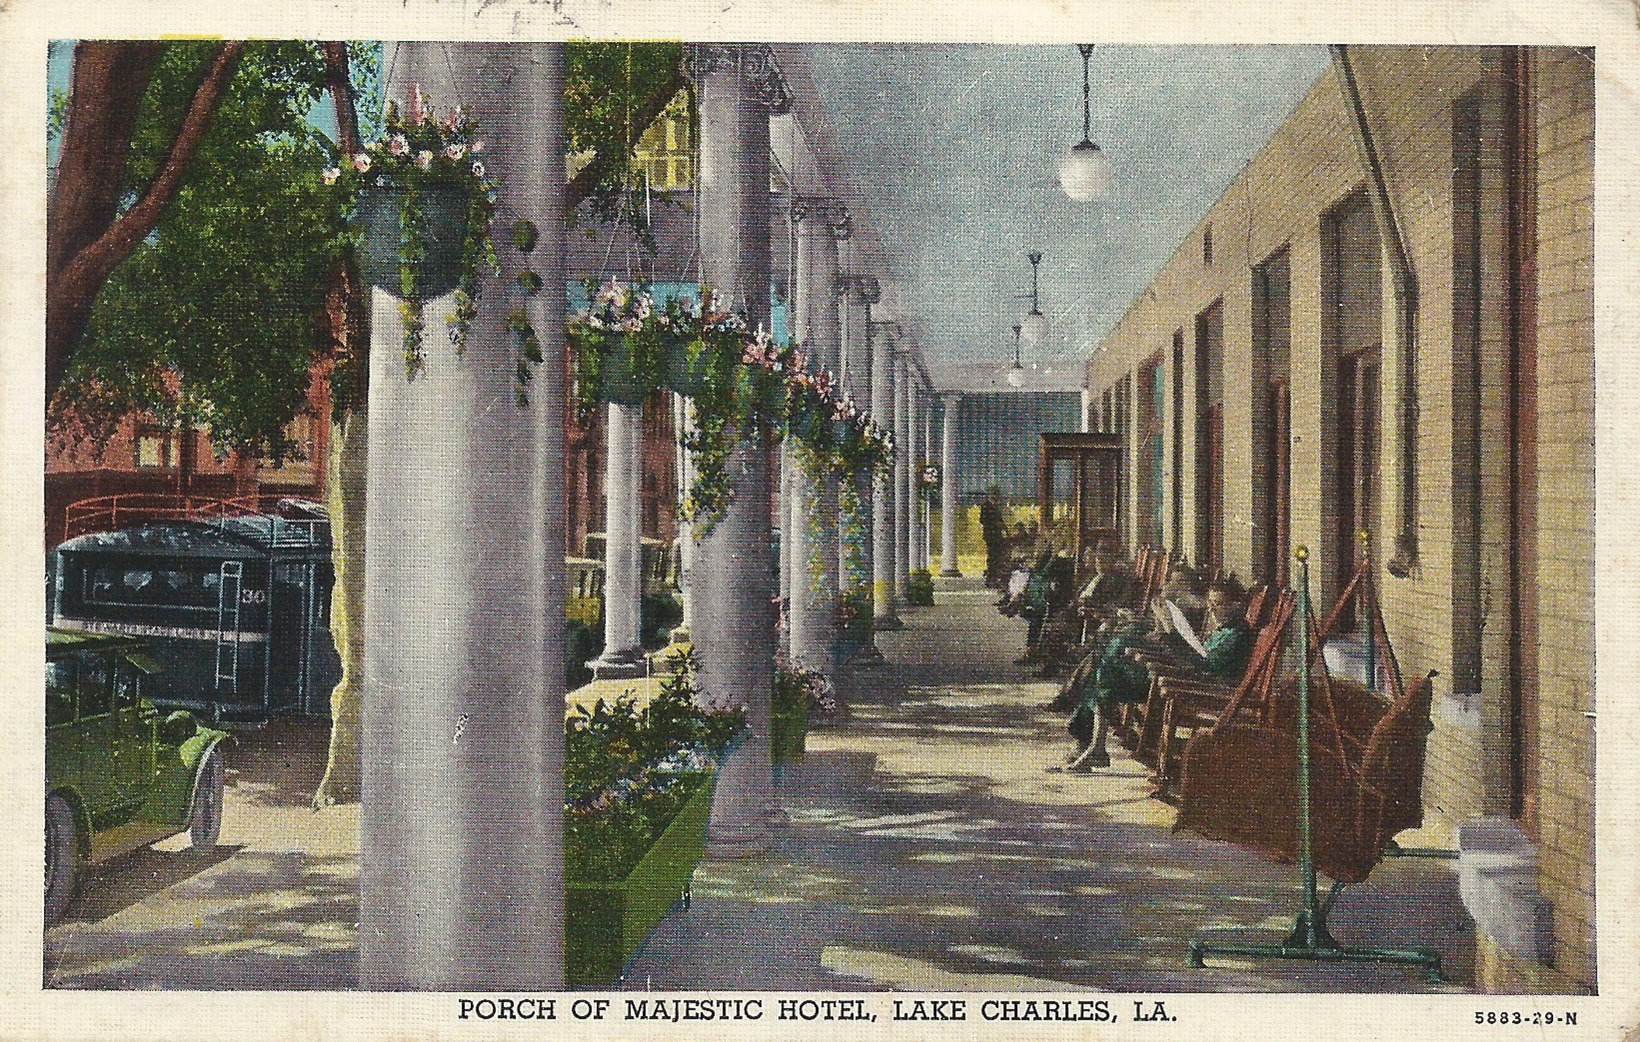 Postcard of the porch at the Majestic Hotel, a Lost Landmark